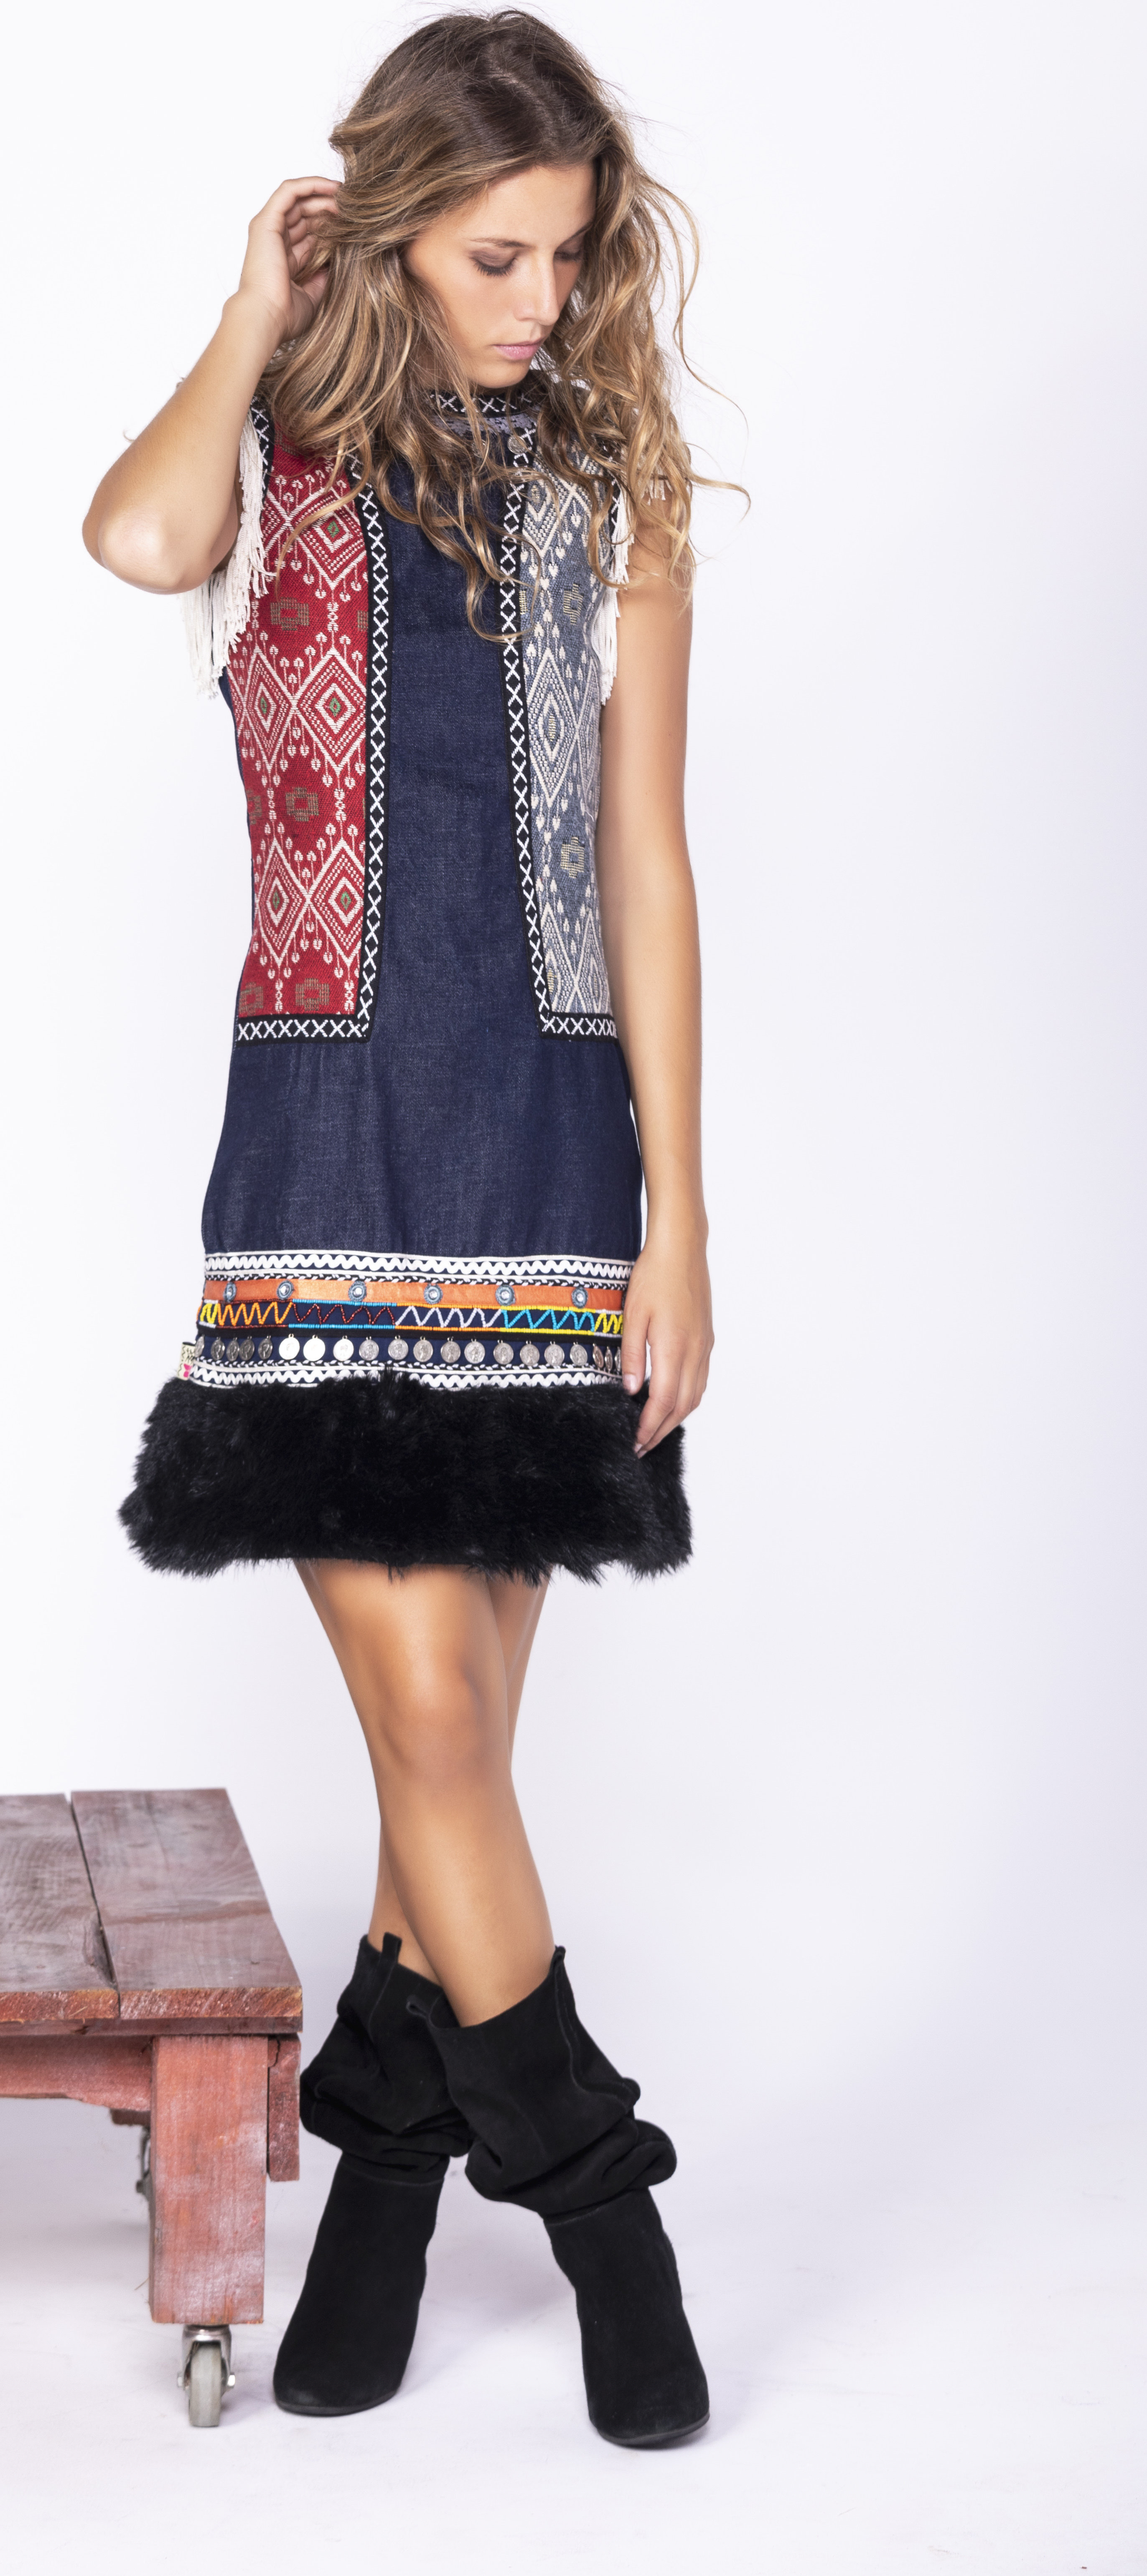 Savage Culture: Embroidered Faux Fur Denim Rhinestone Dress Chenab SAVAGE_35592